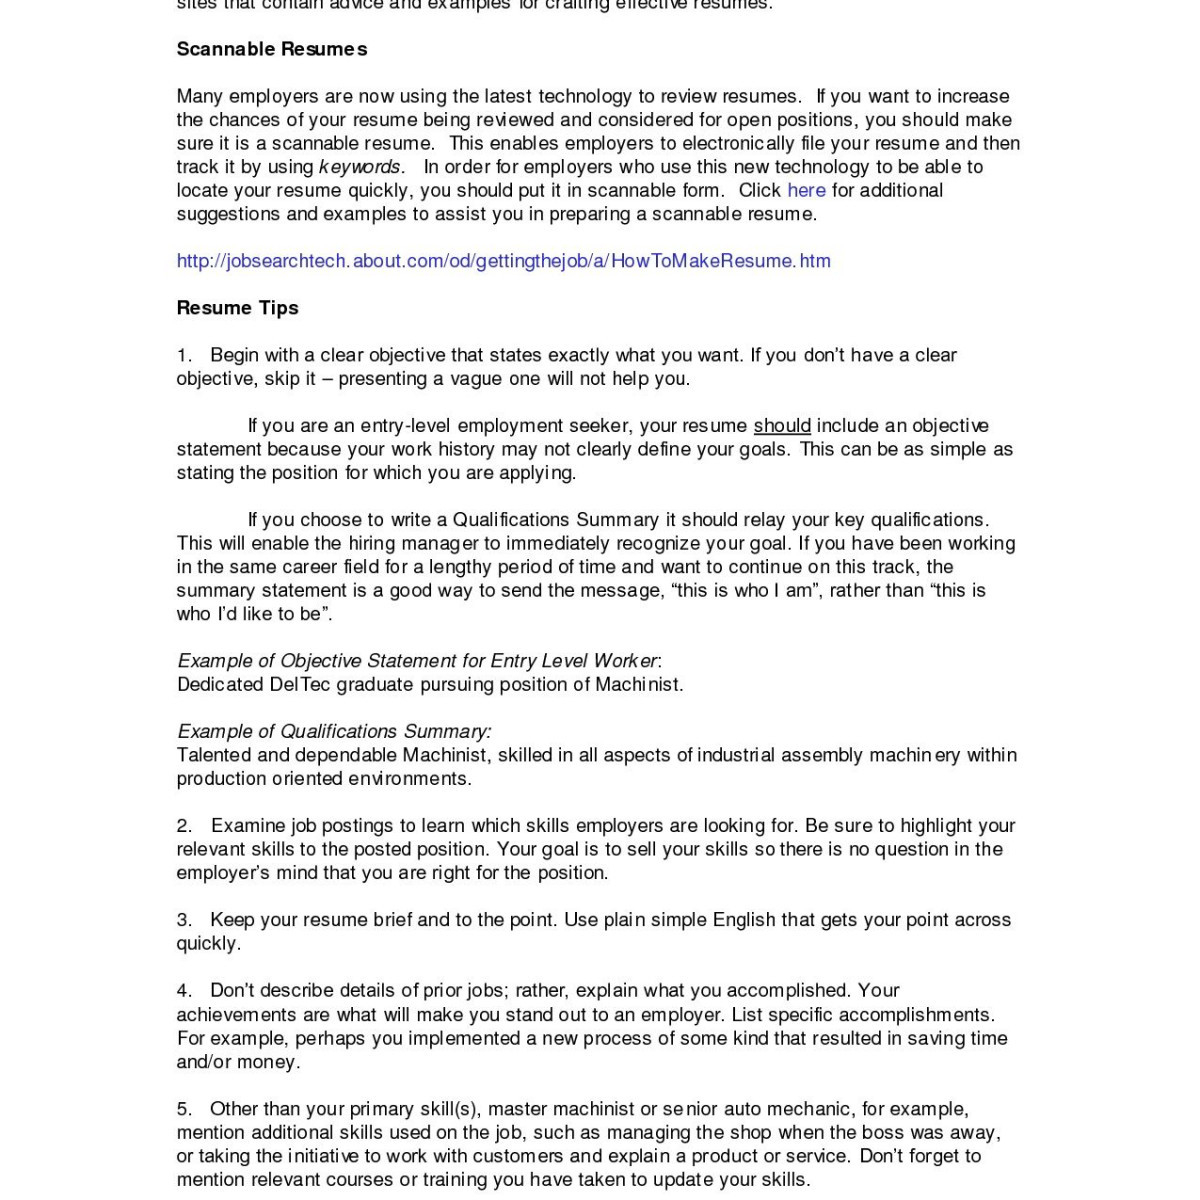 Resume for Med School - 31 Luxury How to Make Your High School Resume Stand Out W1b